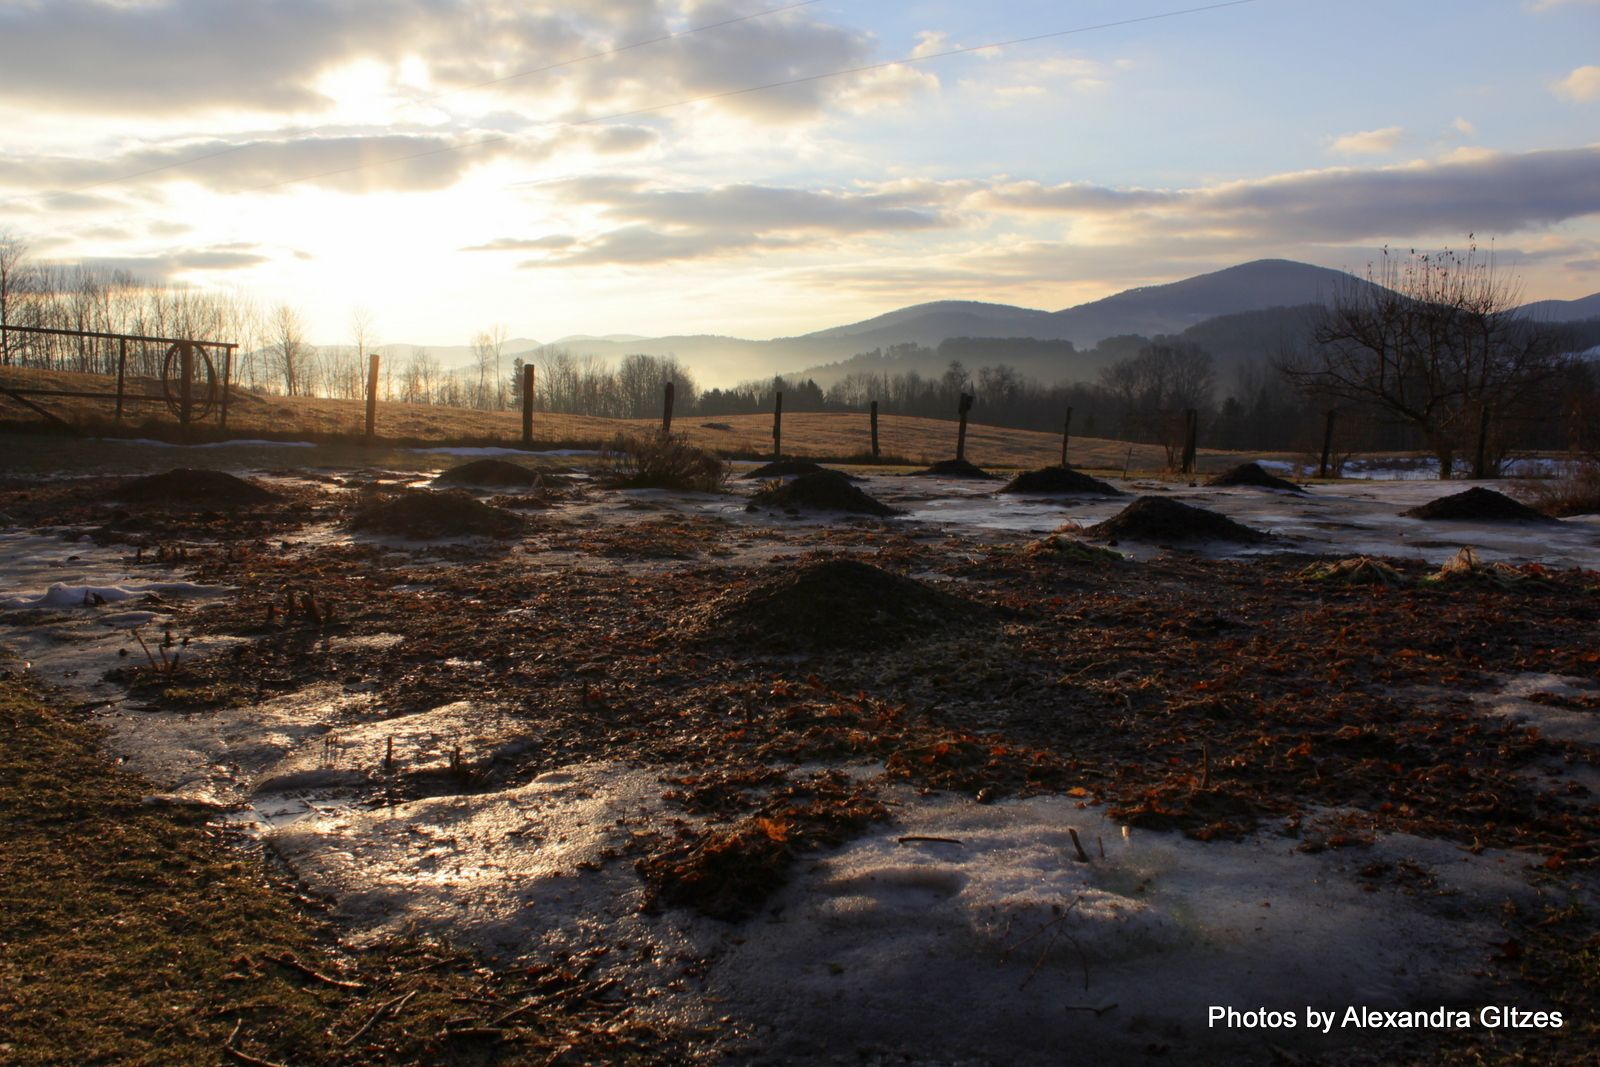 Blanchard Hill Sunrise, Peacham Vermont - Photos by Alexandra Gitzes